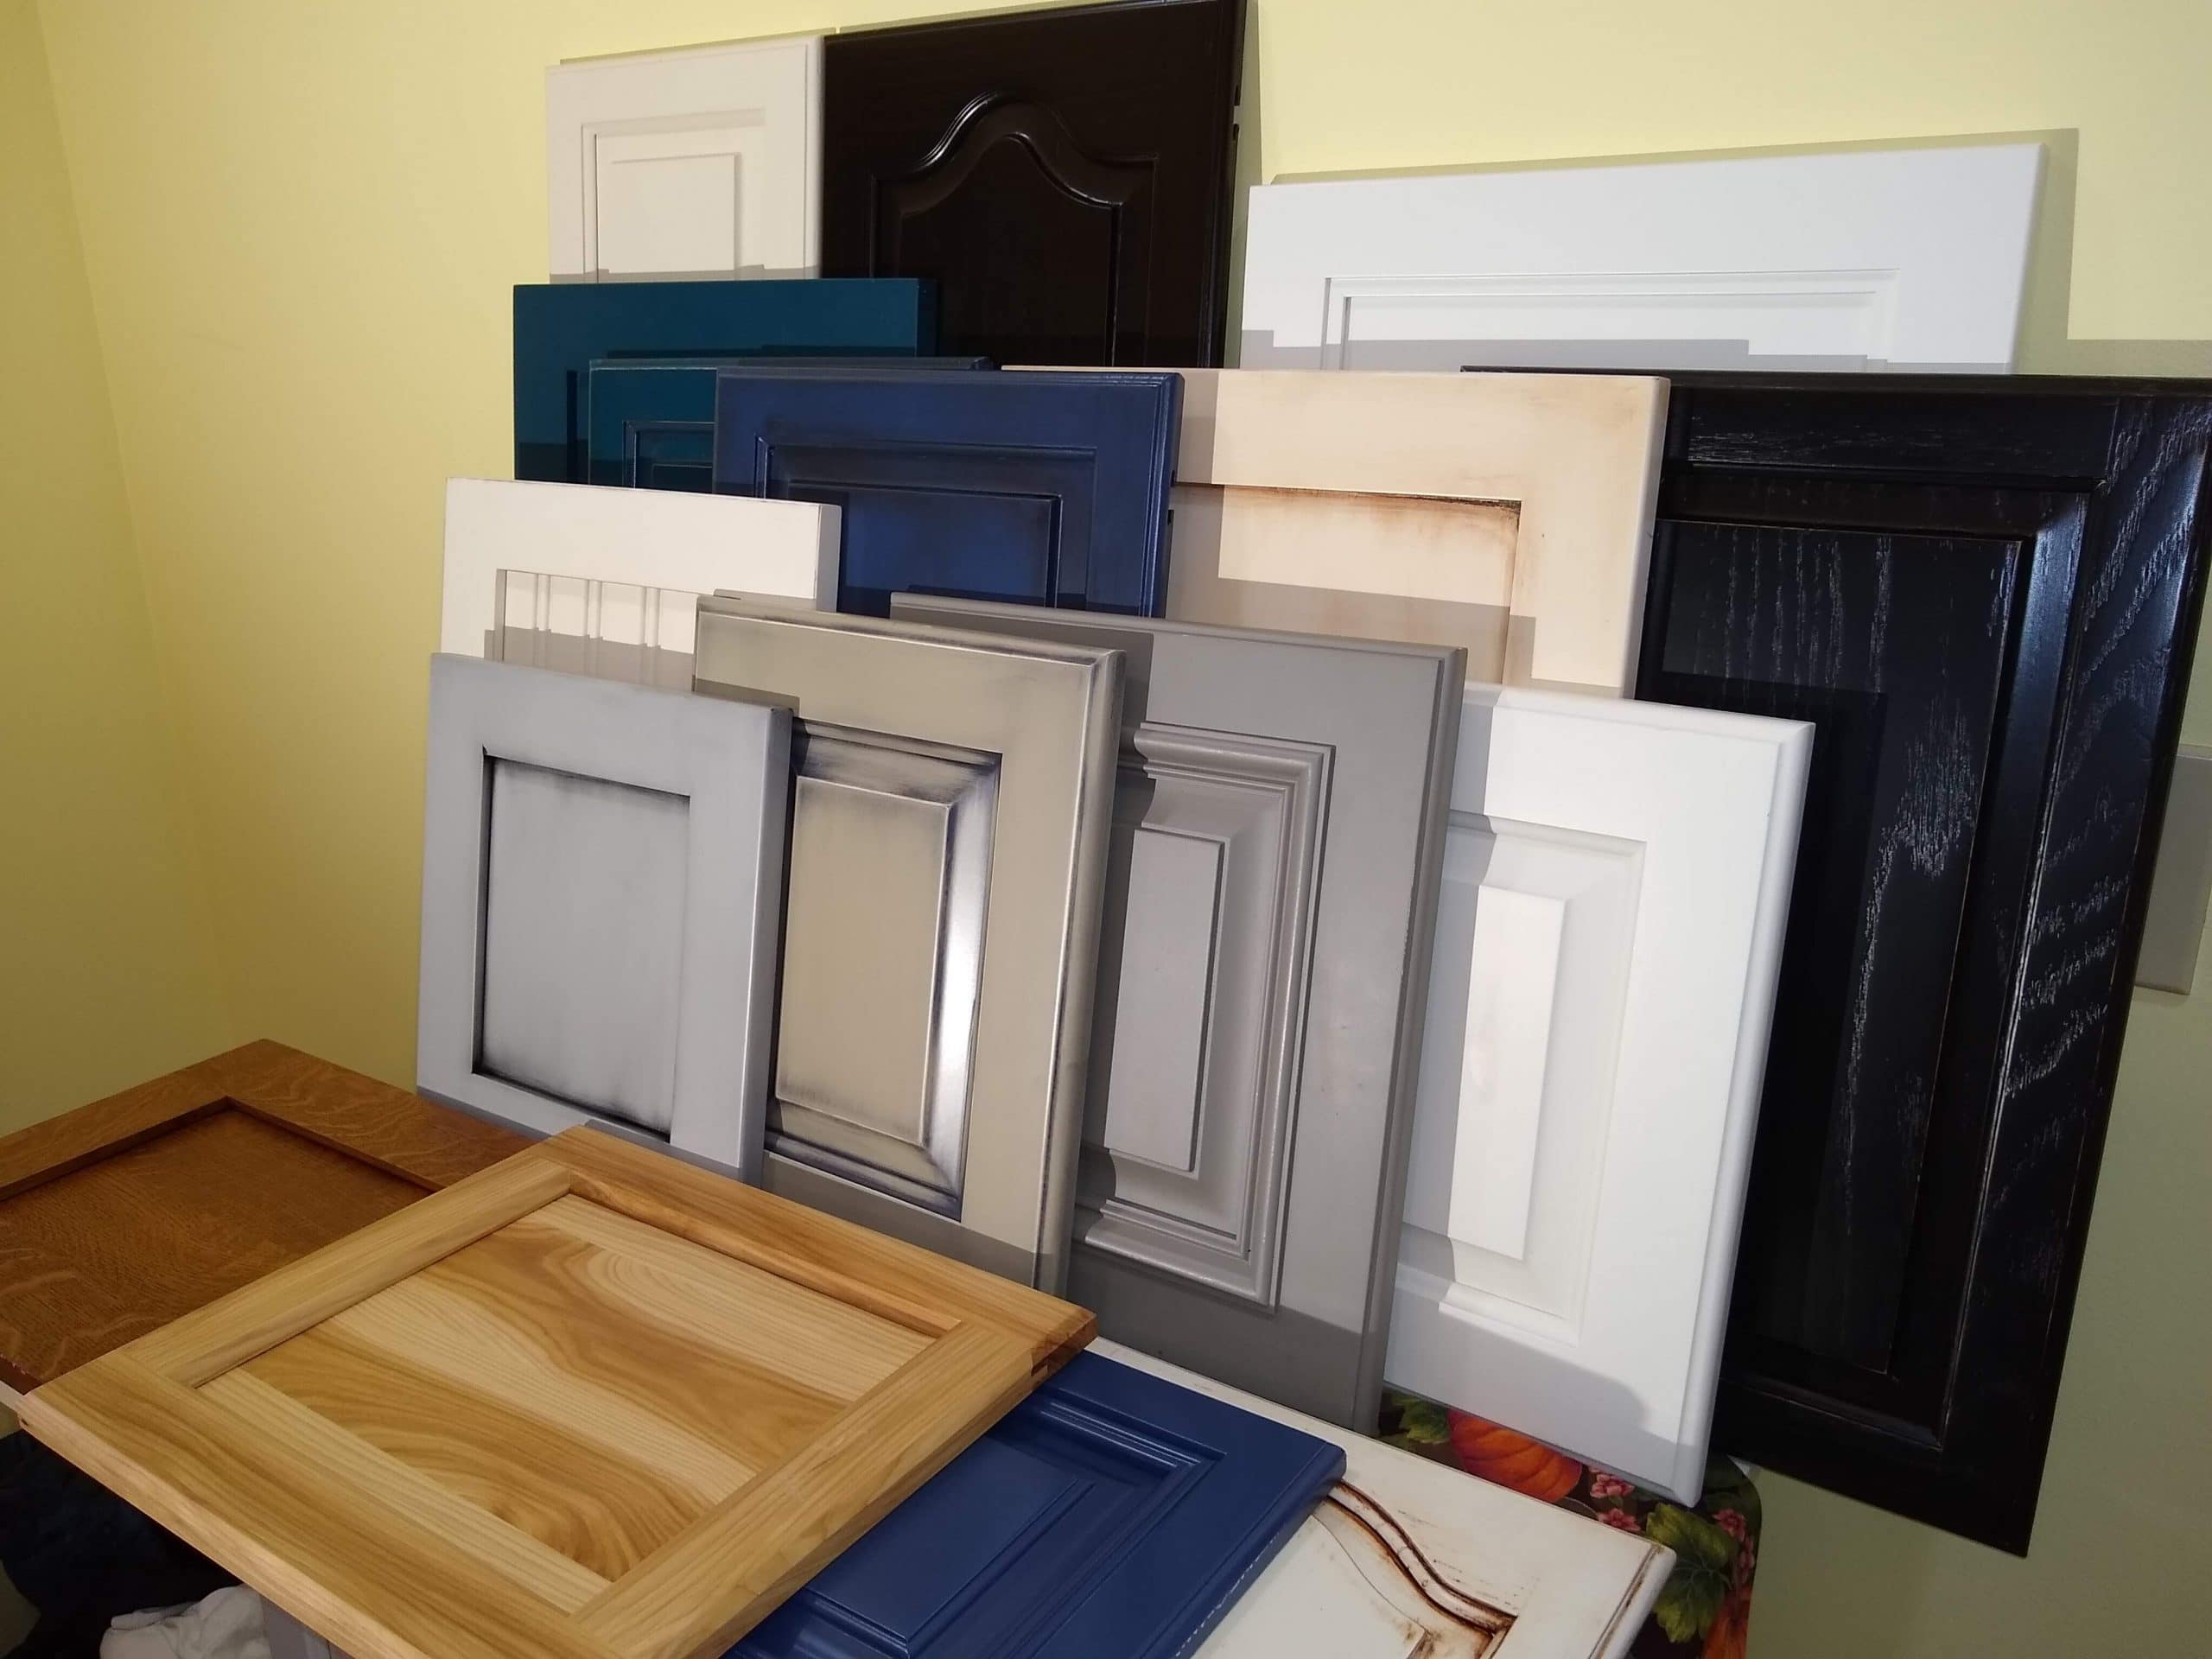 Cabinet Doors Advice From The Experts Homestead Cabinet Design